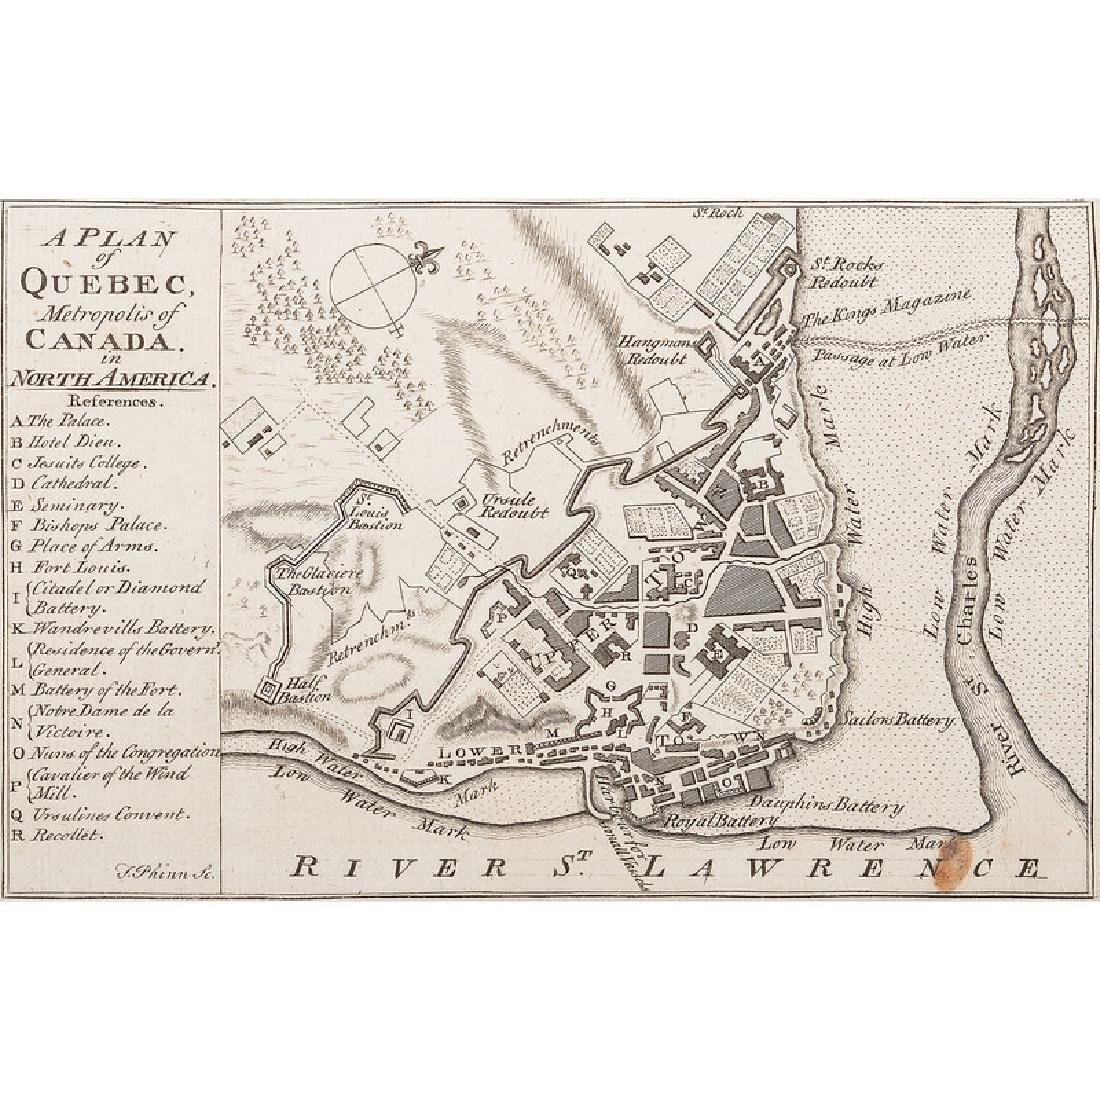 The Scots Magazine Containing Maps of the Battle of the